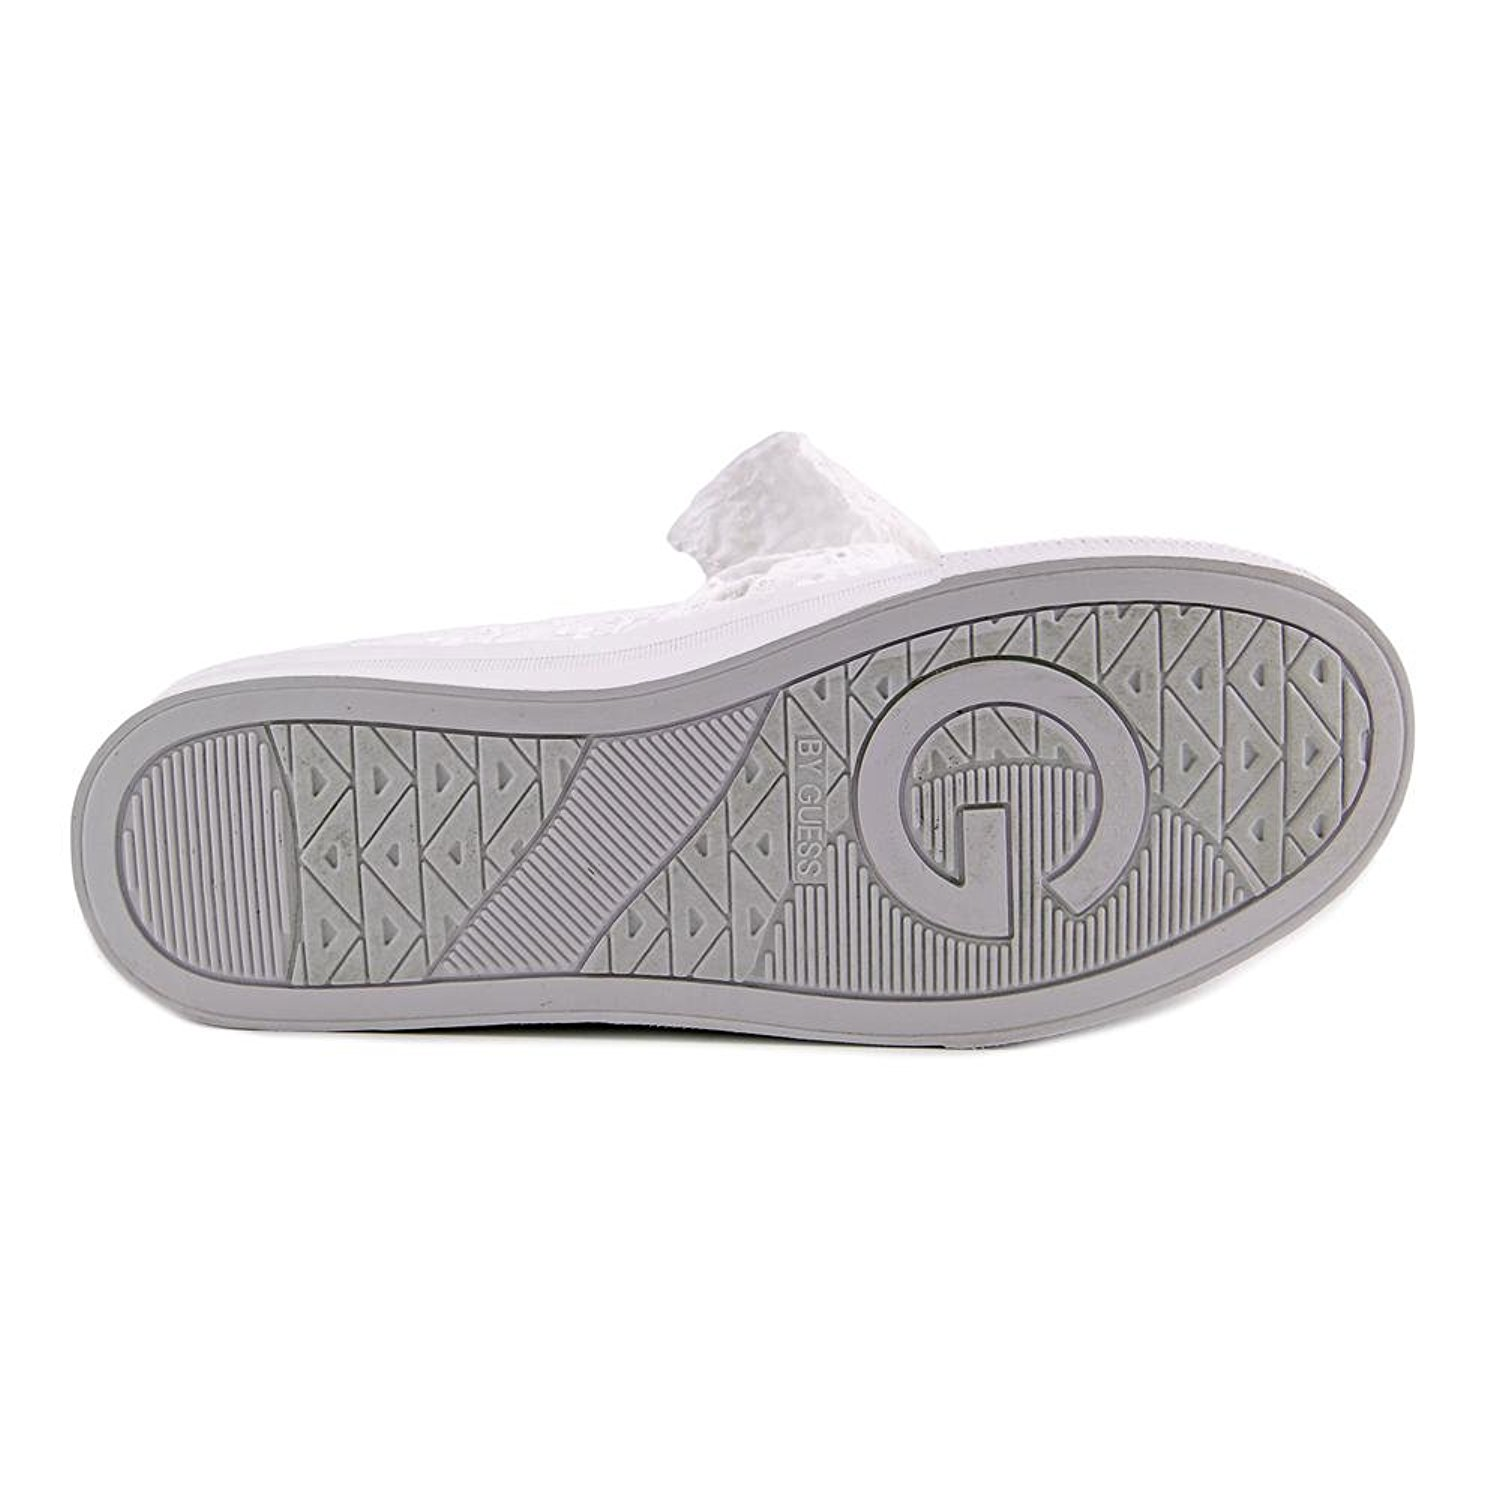 fffa776cc6208 Womens Chippy Fabric Low Top Slip On Fashion Sneakers